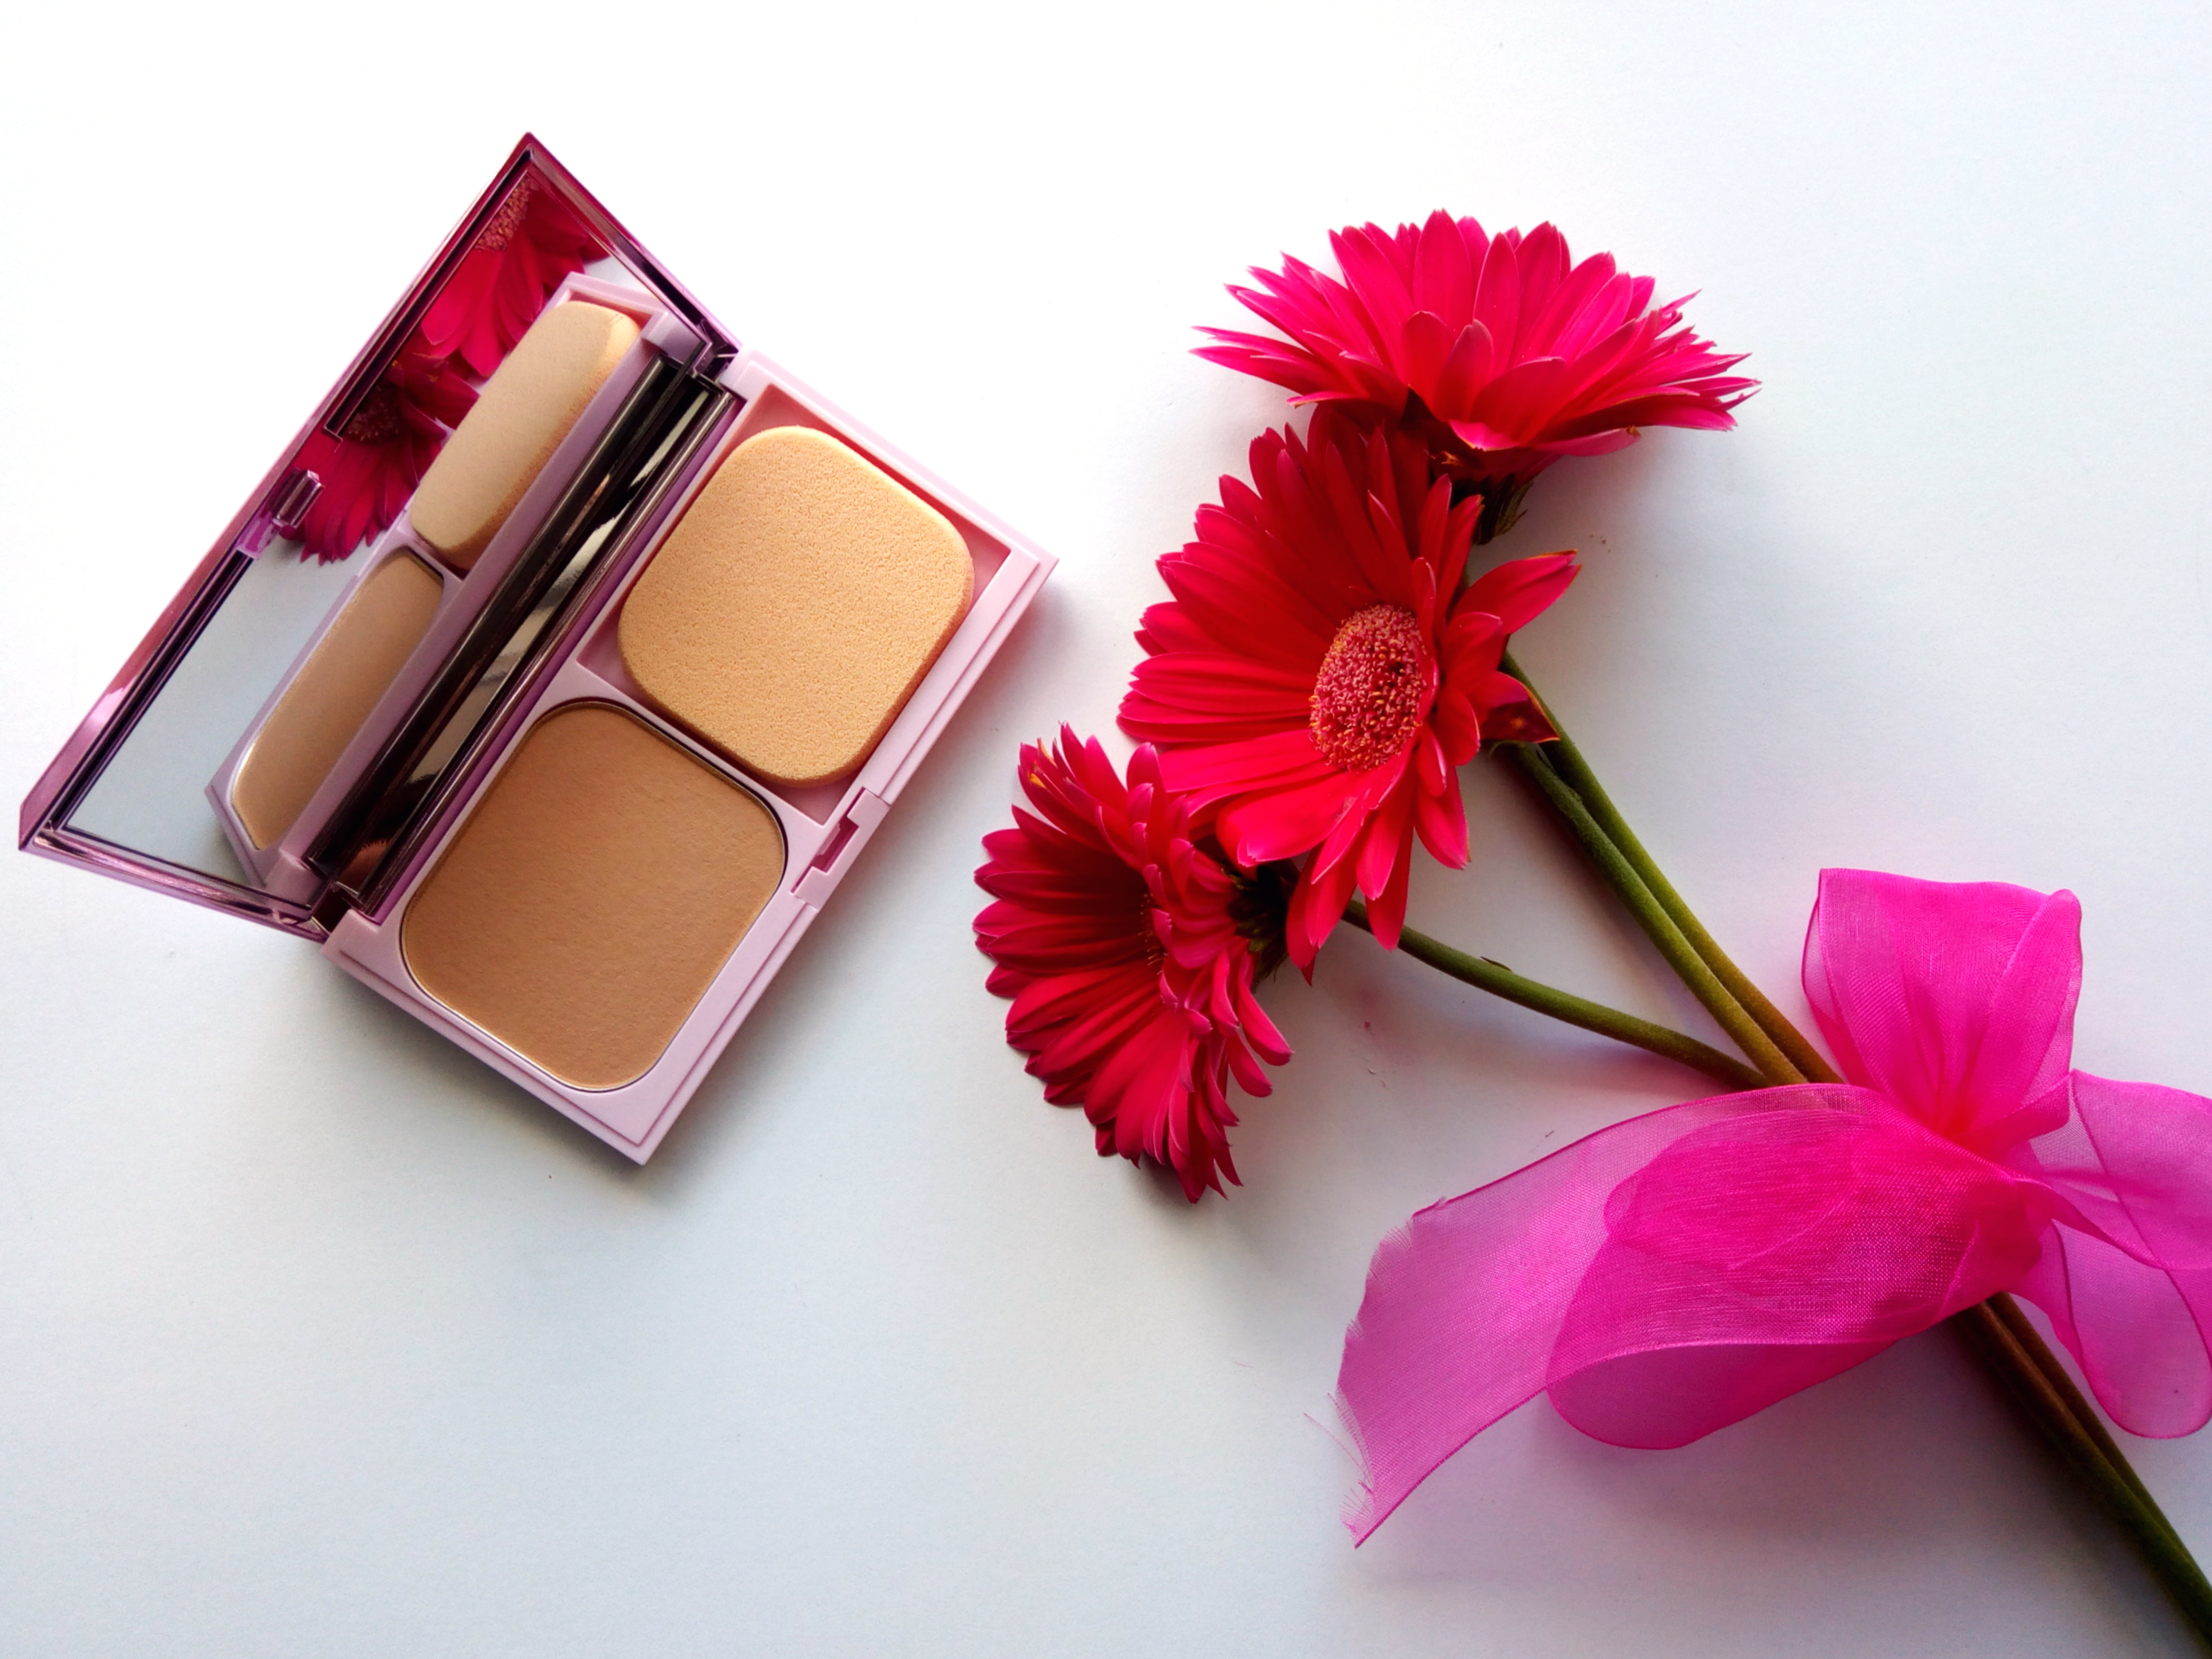 Za Airy Flawless Powder Foundation – OC30 Healthy Ivory| Review